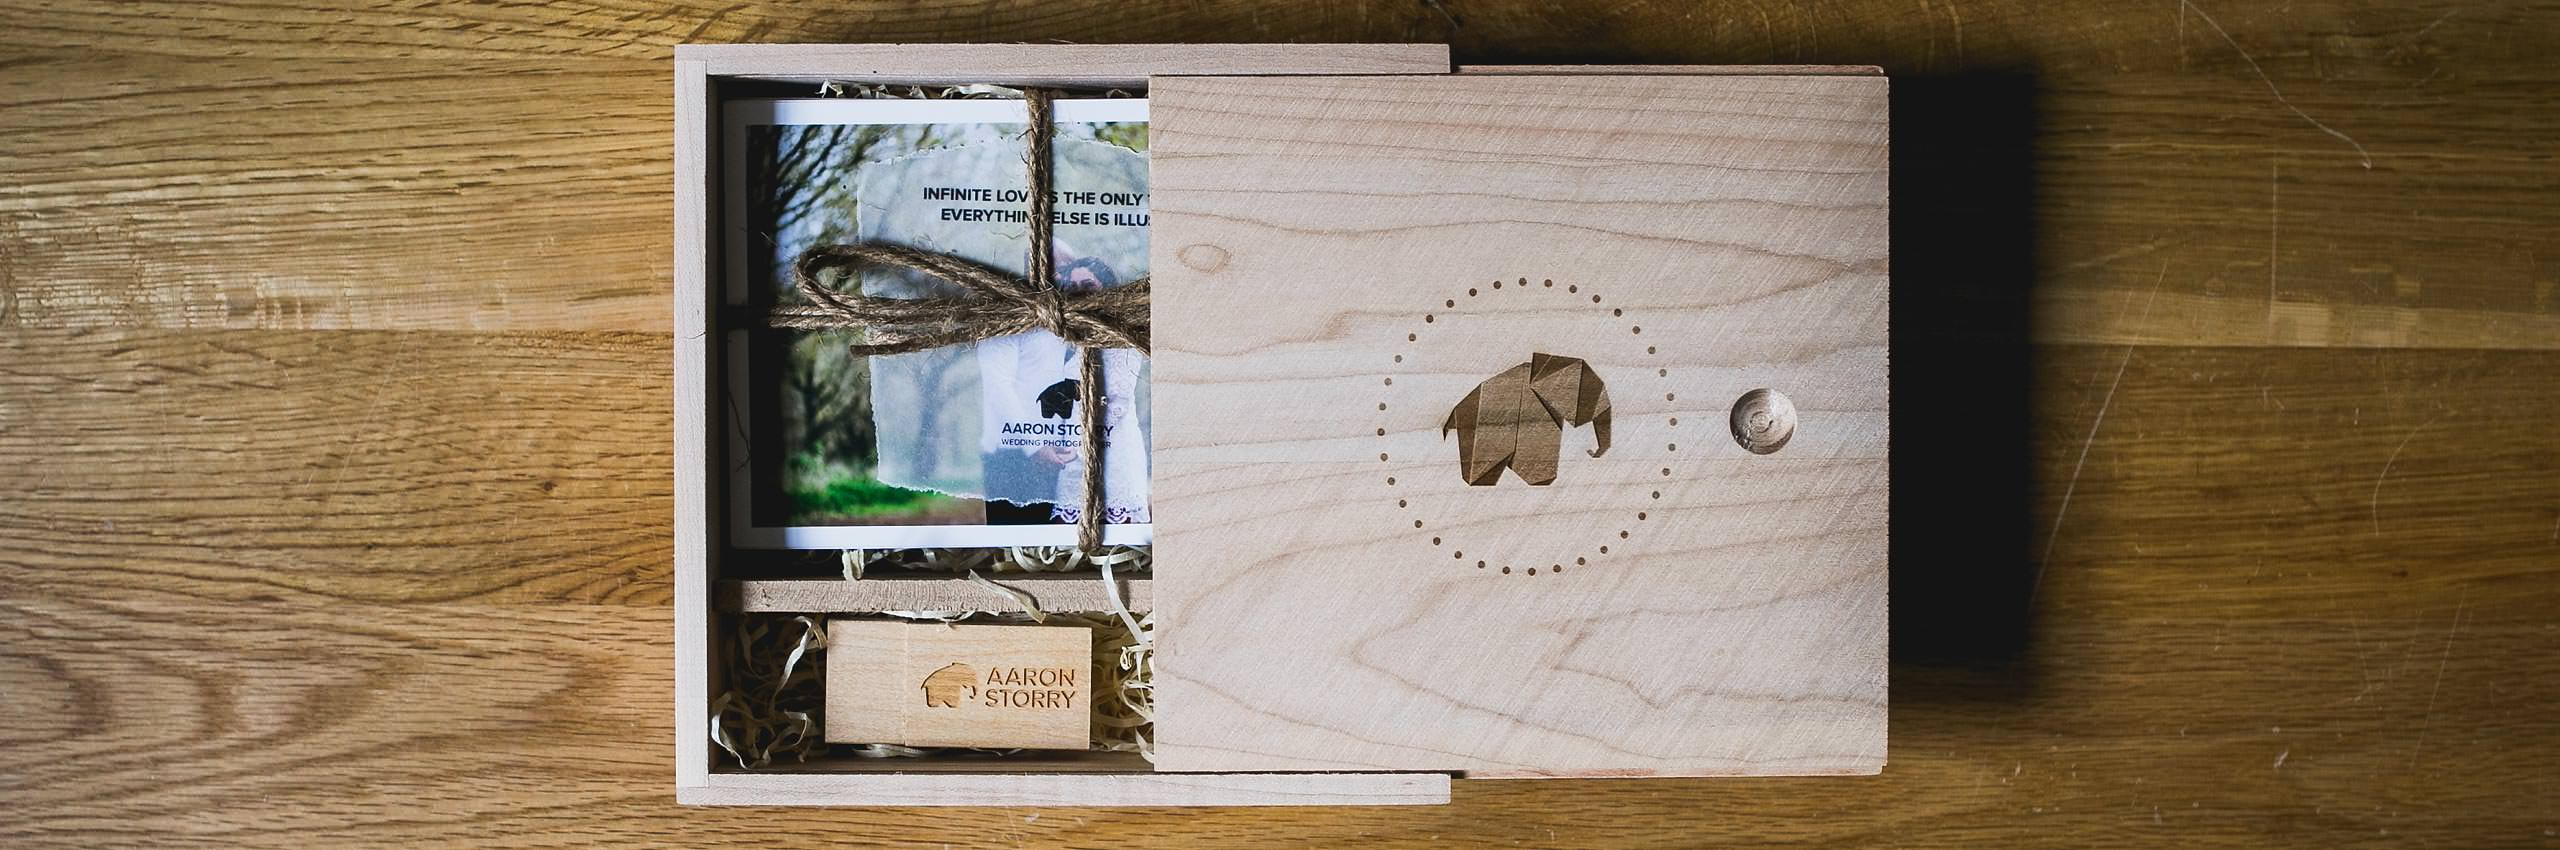 Aaron Storry Photography - Wooden USB Box